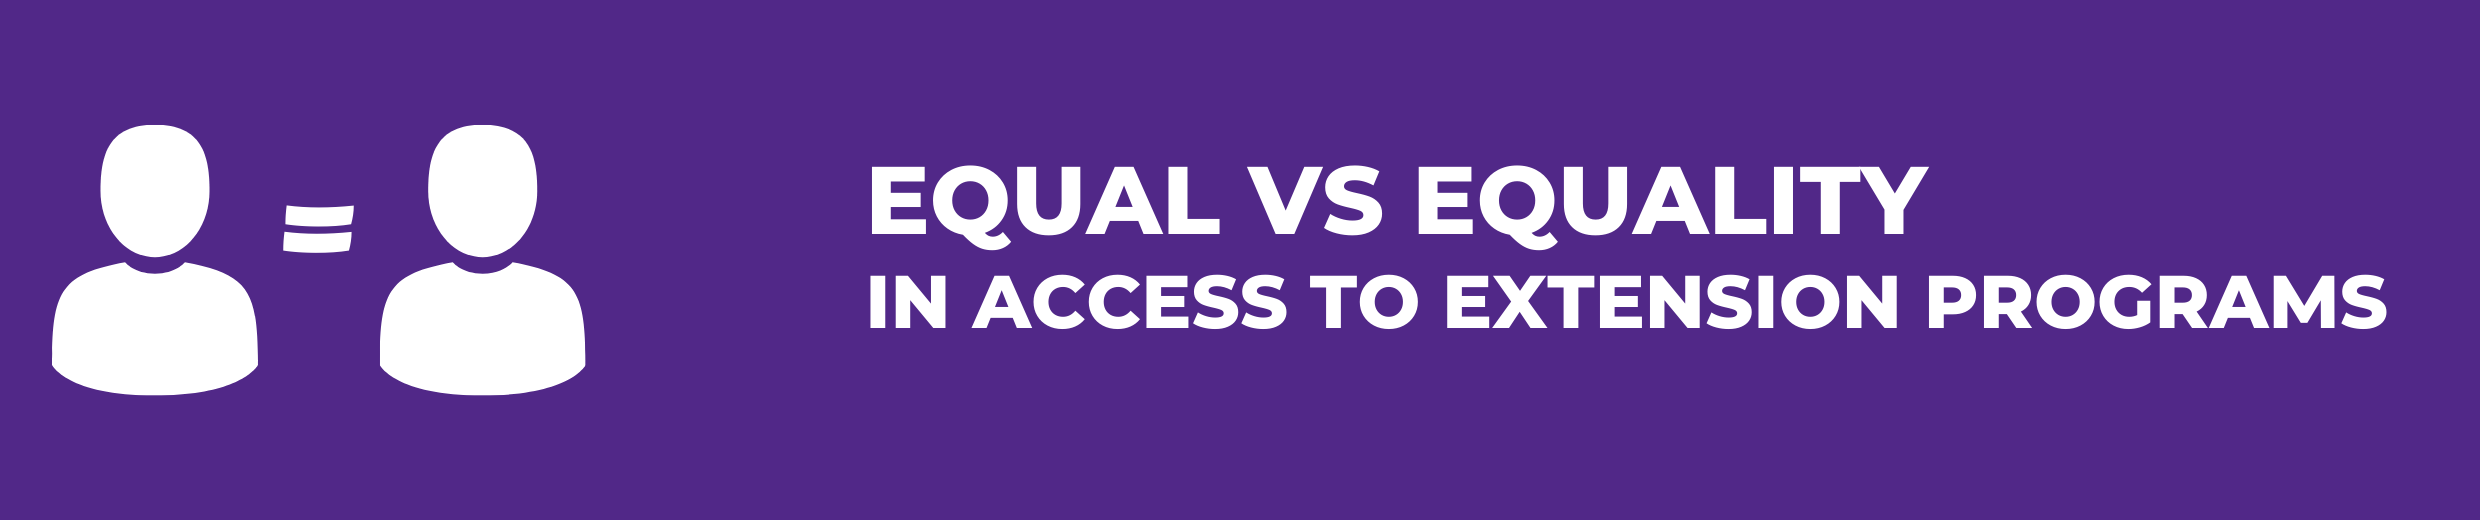 Equal vs Equality in access to Extension programs